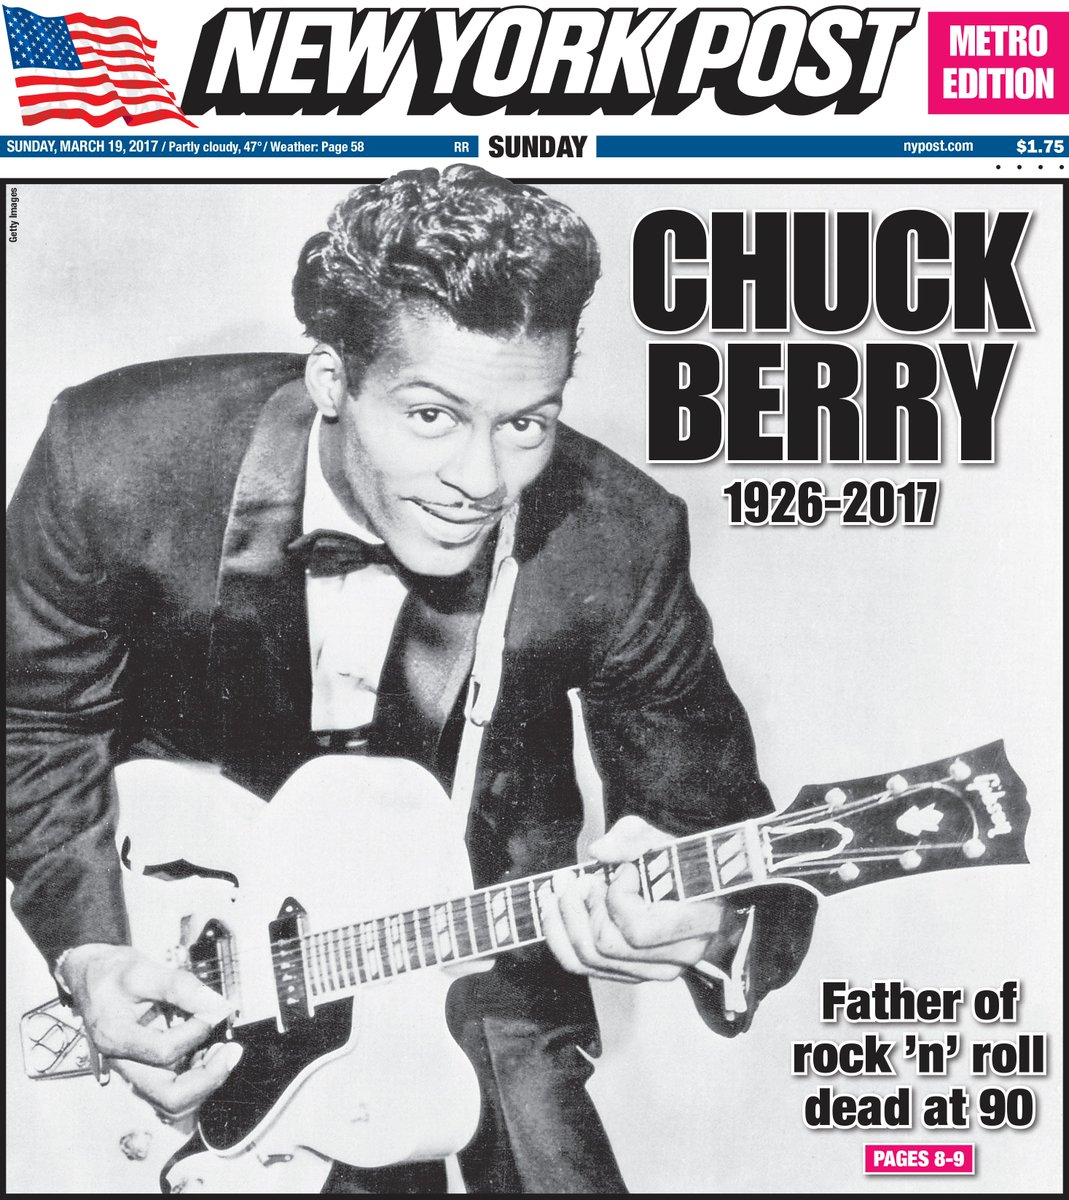 Tomorrow's Cover: Chuck Berry, Legendary 'father Of Rock